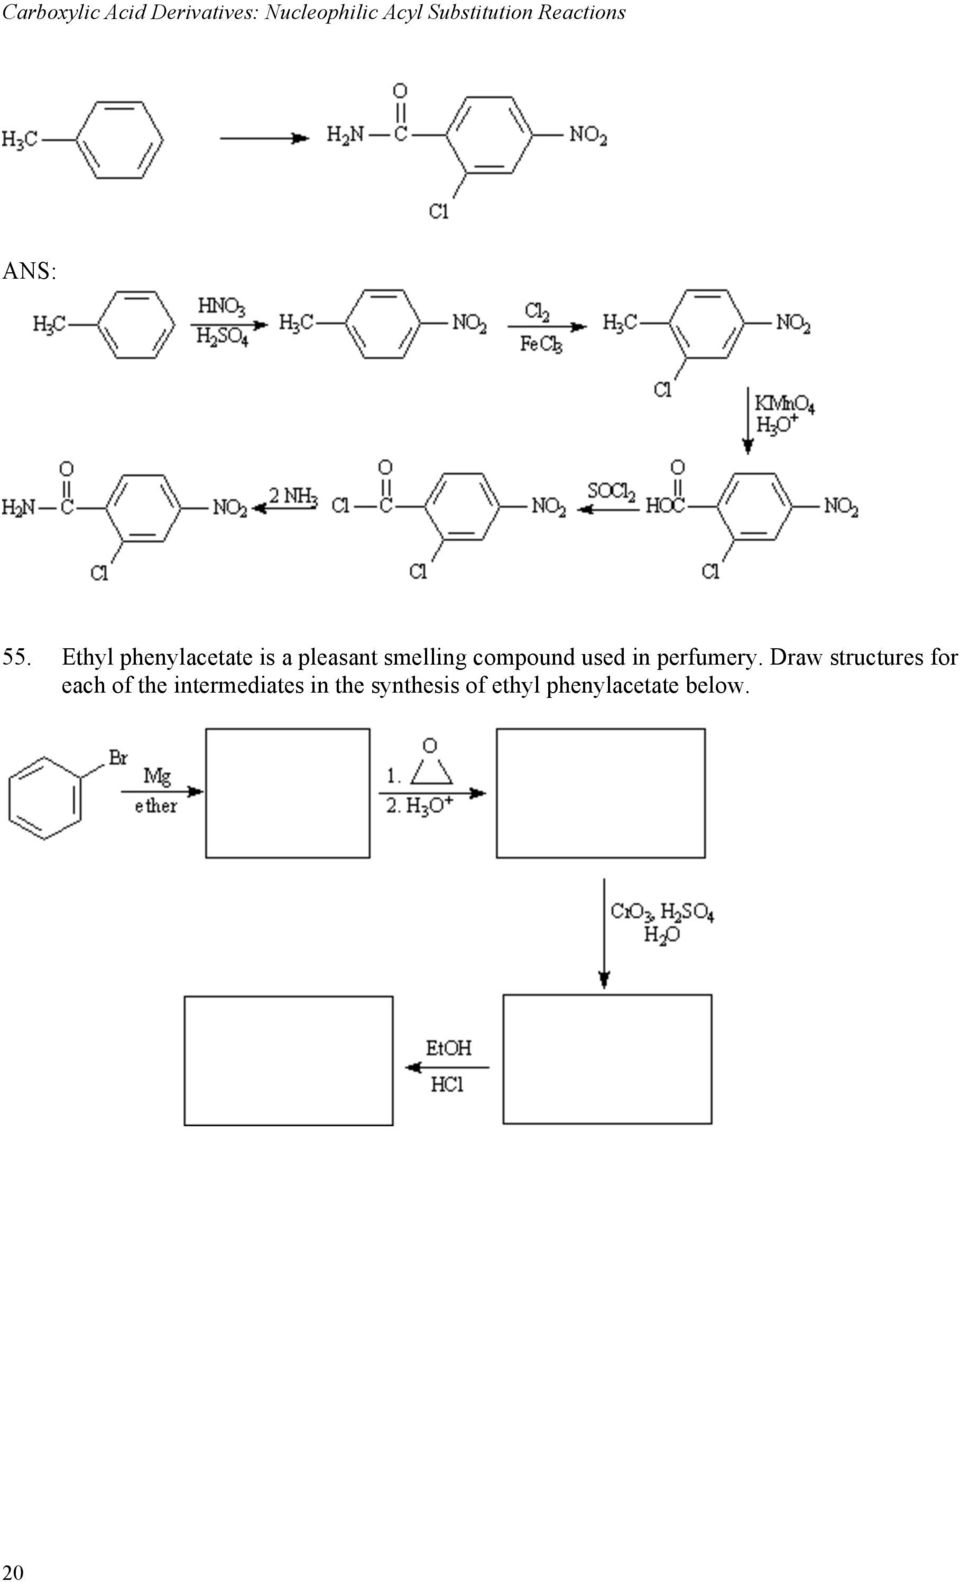 Ethyl phenylacetate is a pleasant smelling compound used in